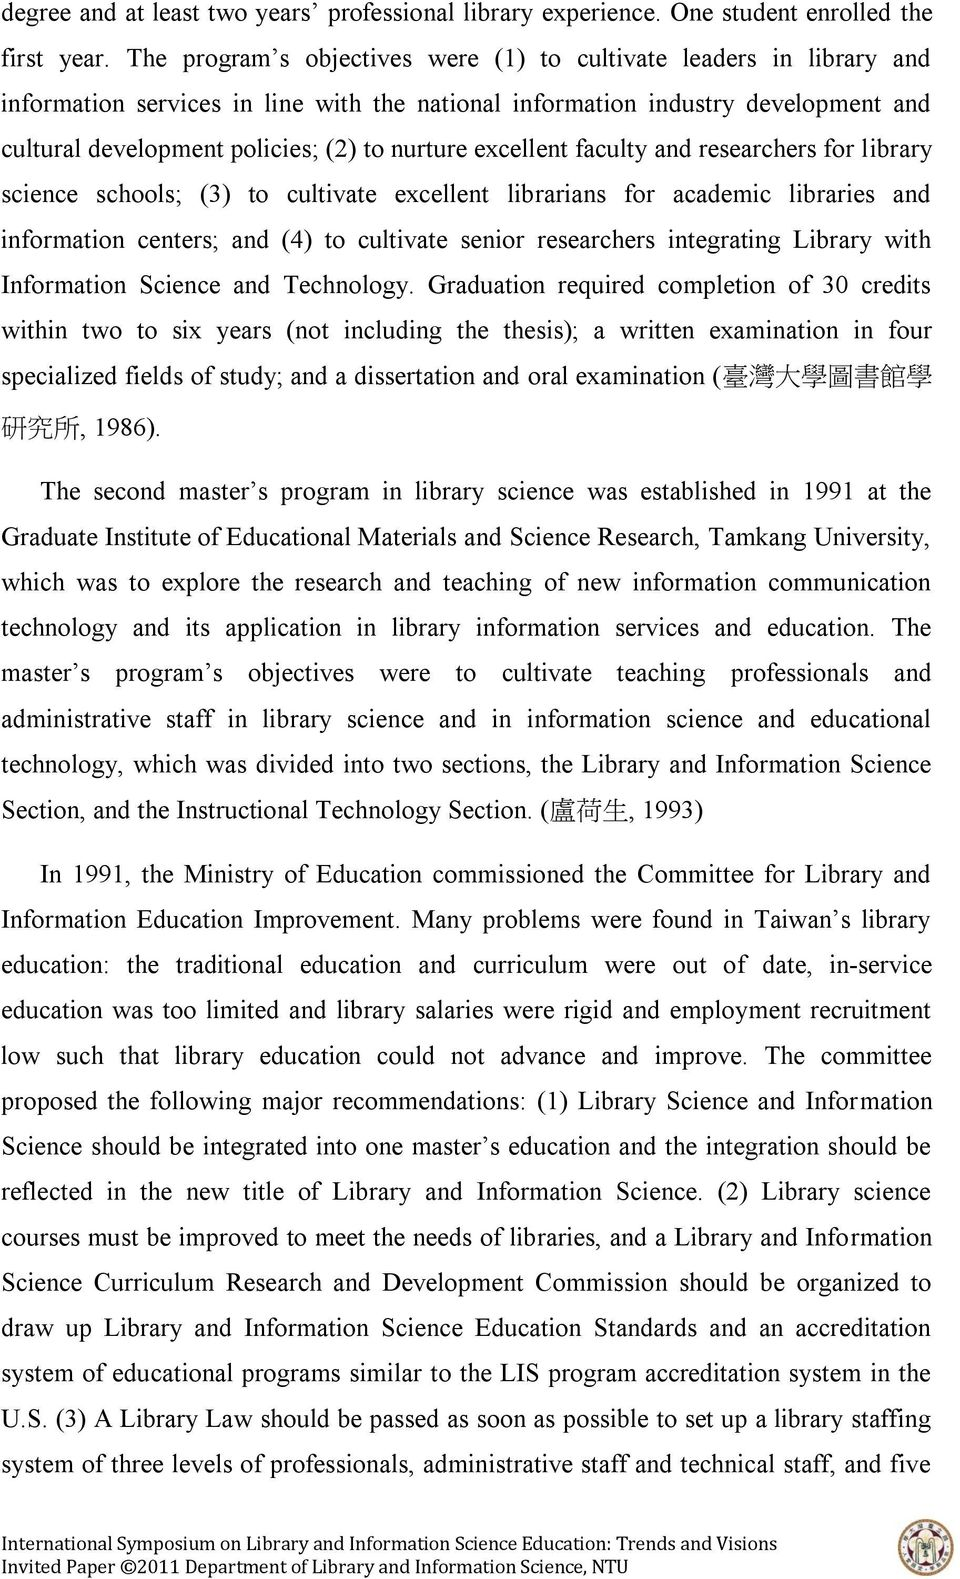 excellent faculty and researchers for library science schools; (3) to cultivate excellent librarians for academic libraries and information centers; and (4) to cultivate senior researchers